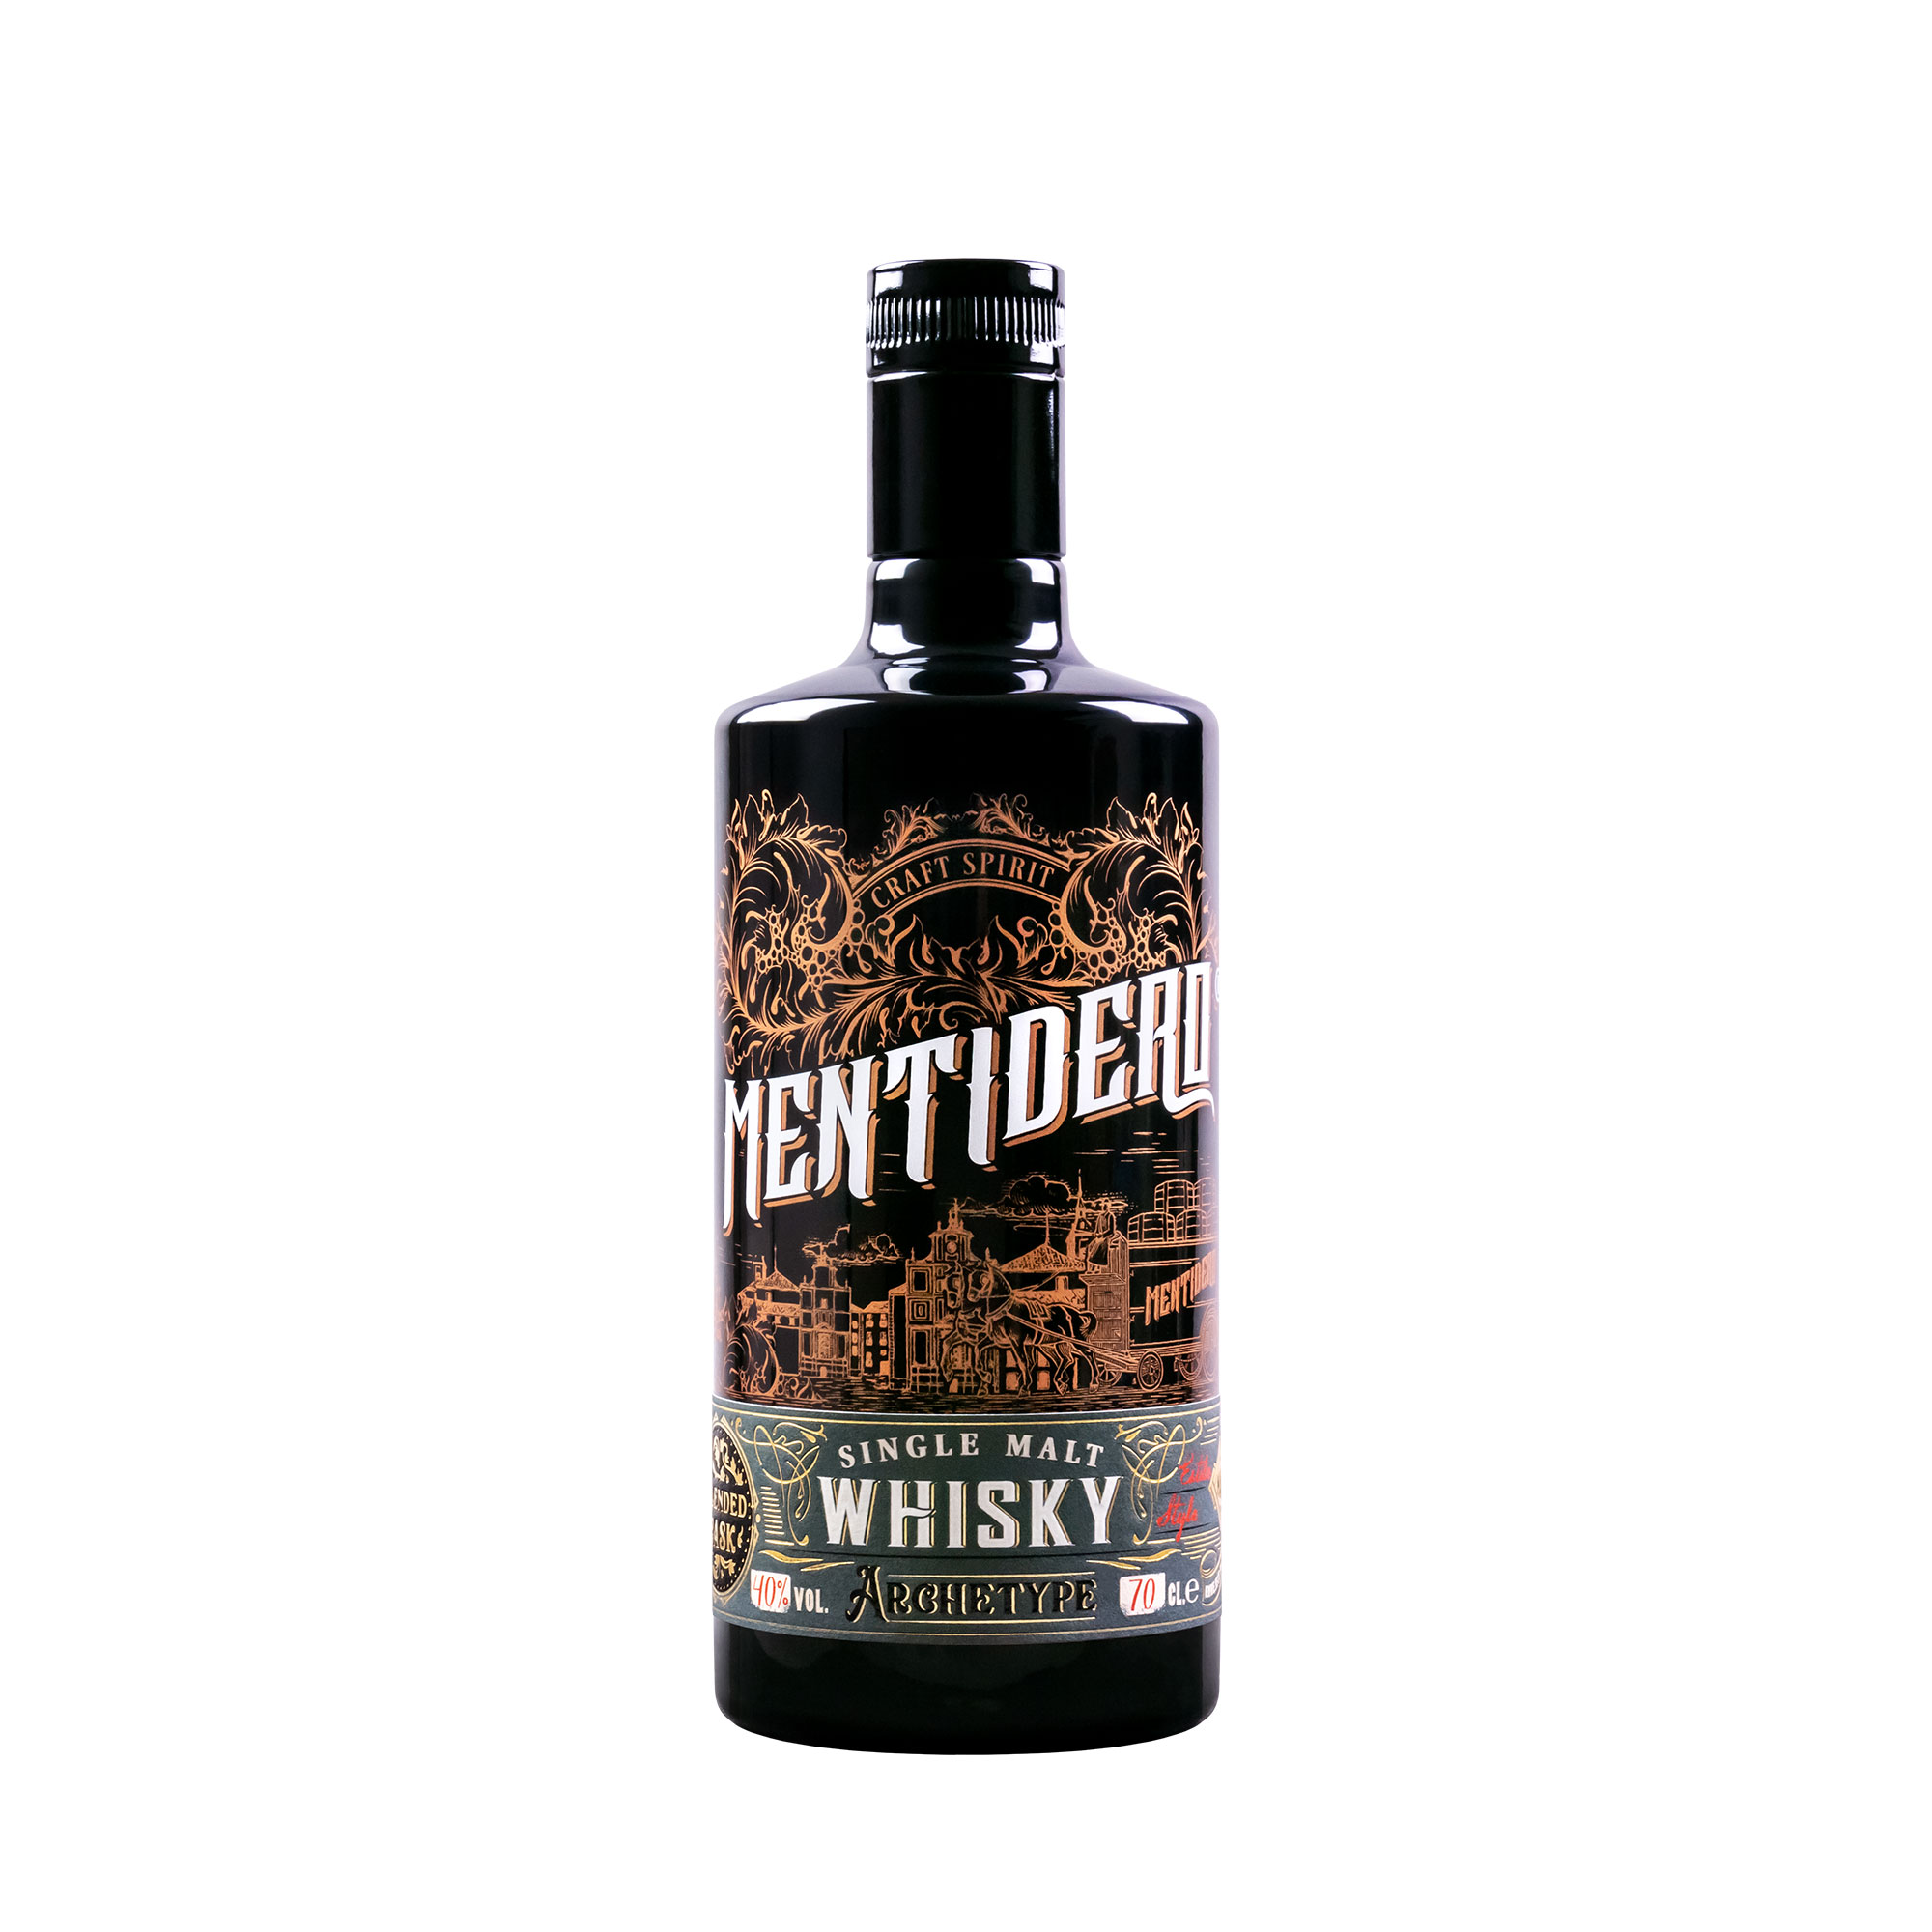 MENTIDERO Archetype Whisky Craft